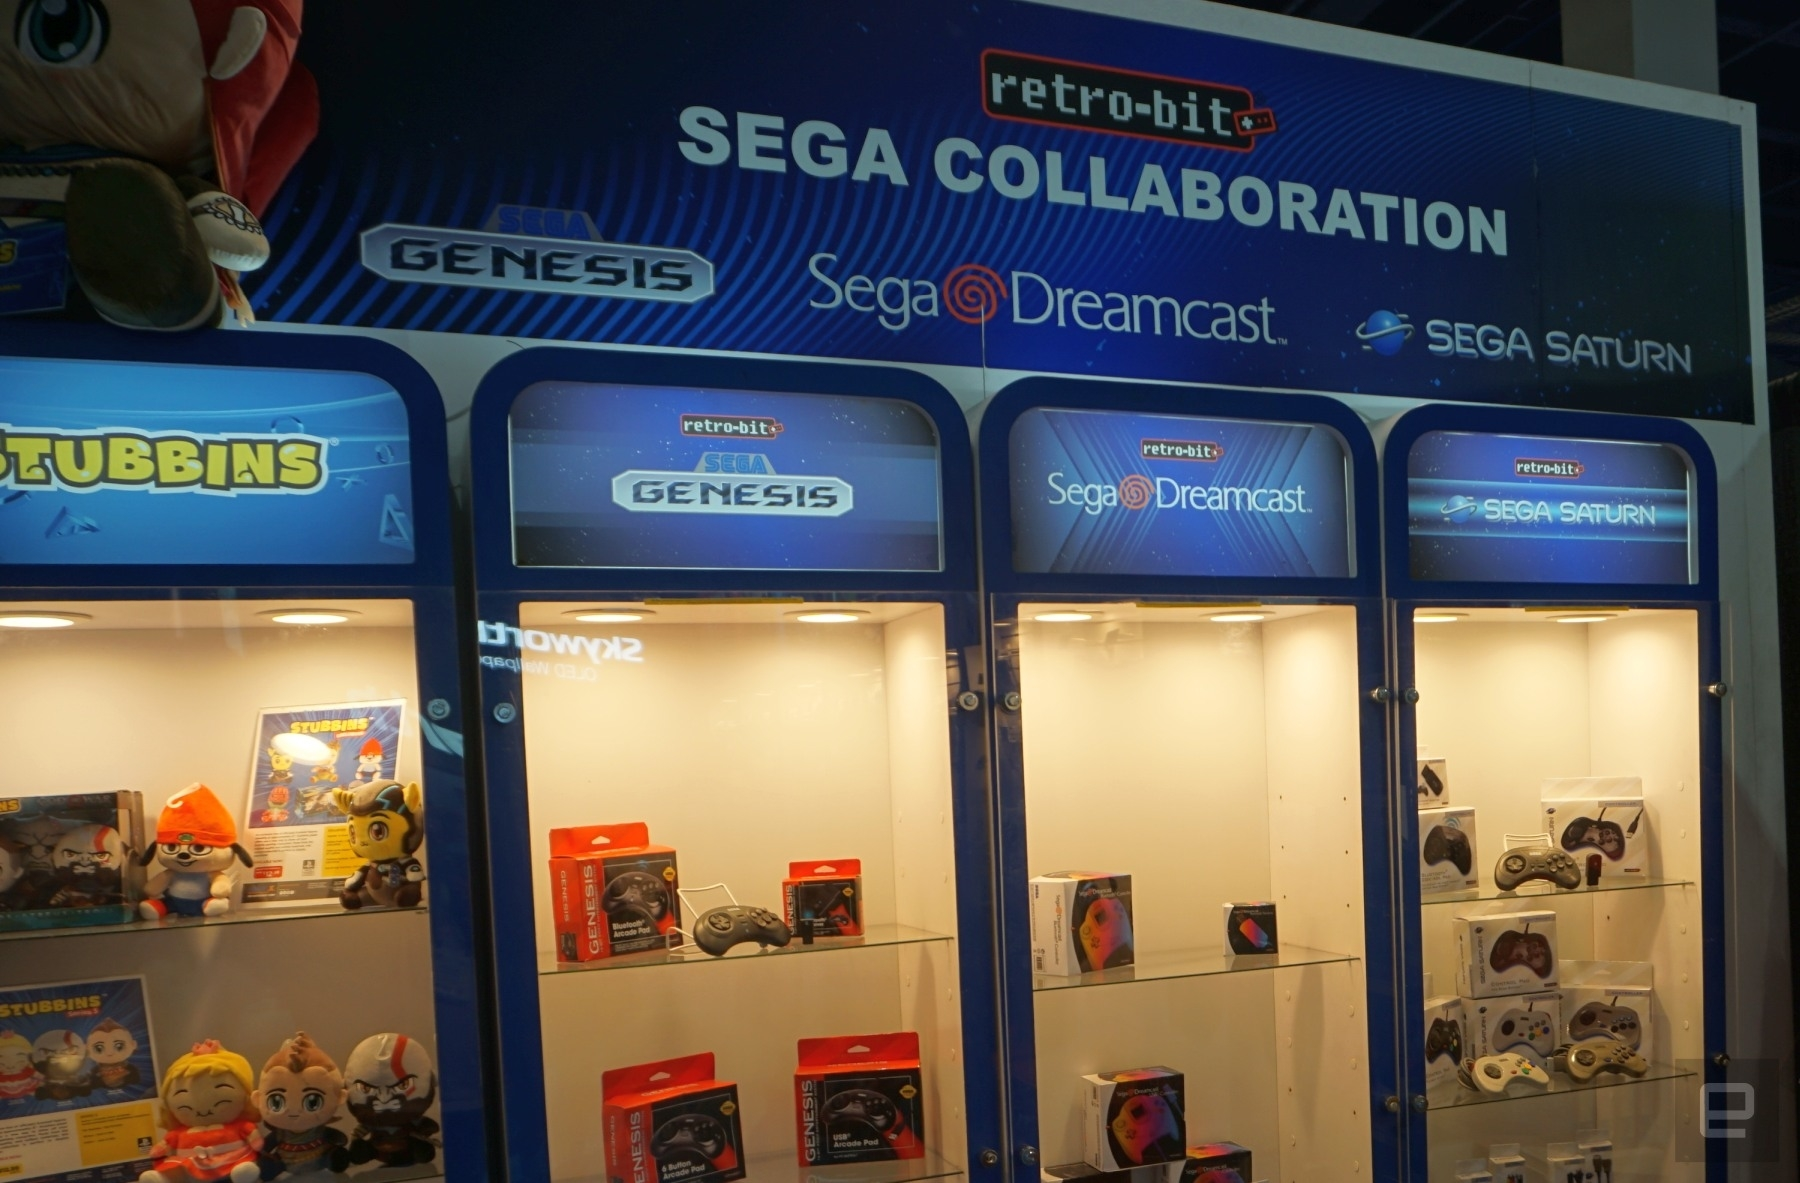 Retro-bit brought brand-new Sega accessories to CES | DeviceDaily.com